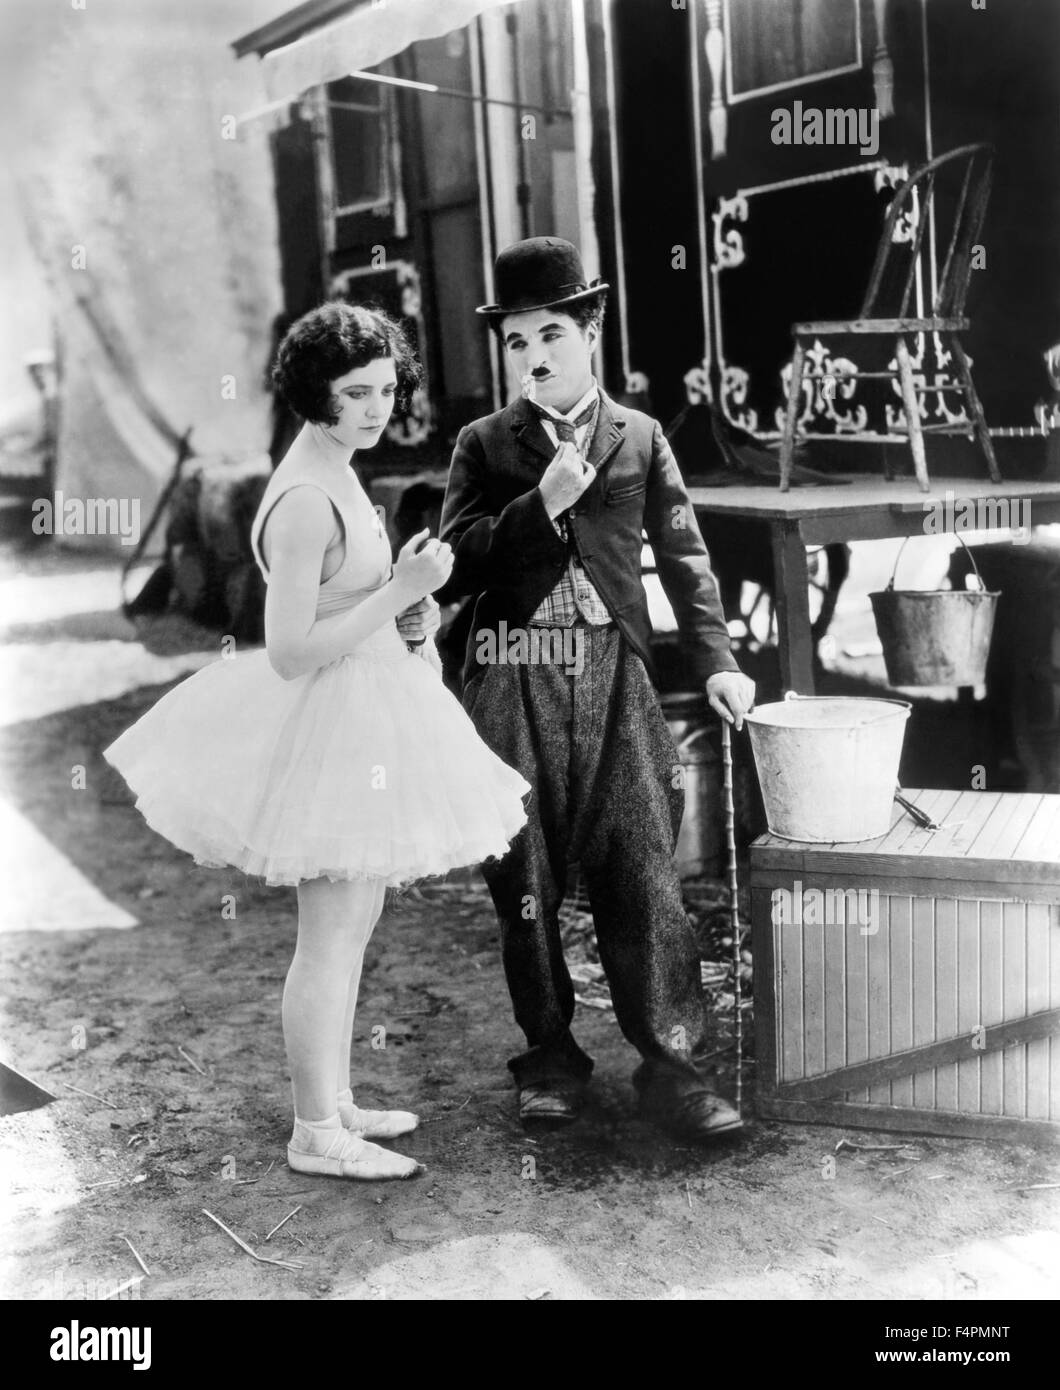 Merna Kennedy and Charles Chaplin / The Circus / 1928 directed by Charles Chaplin [United Artists] - Stock Image